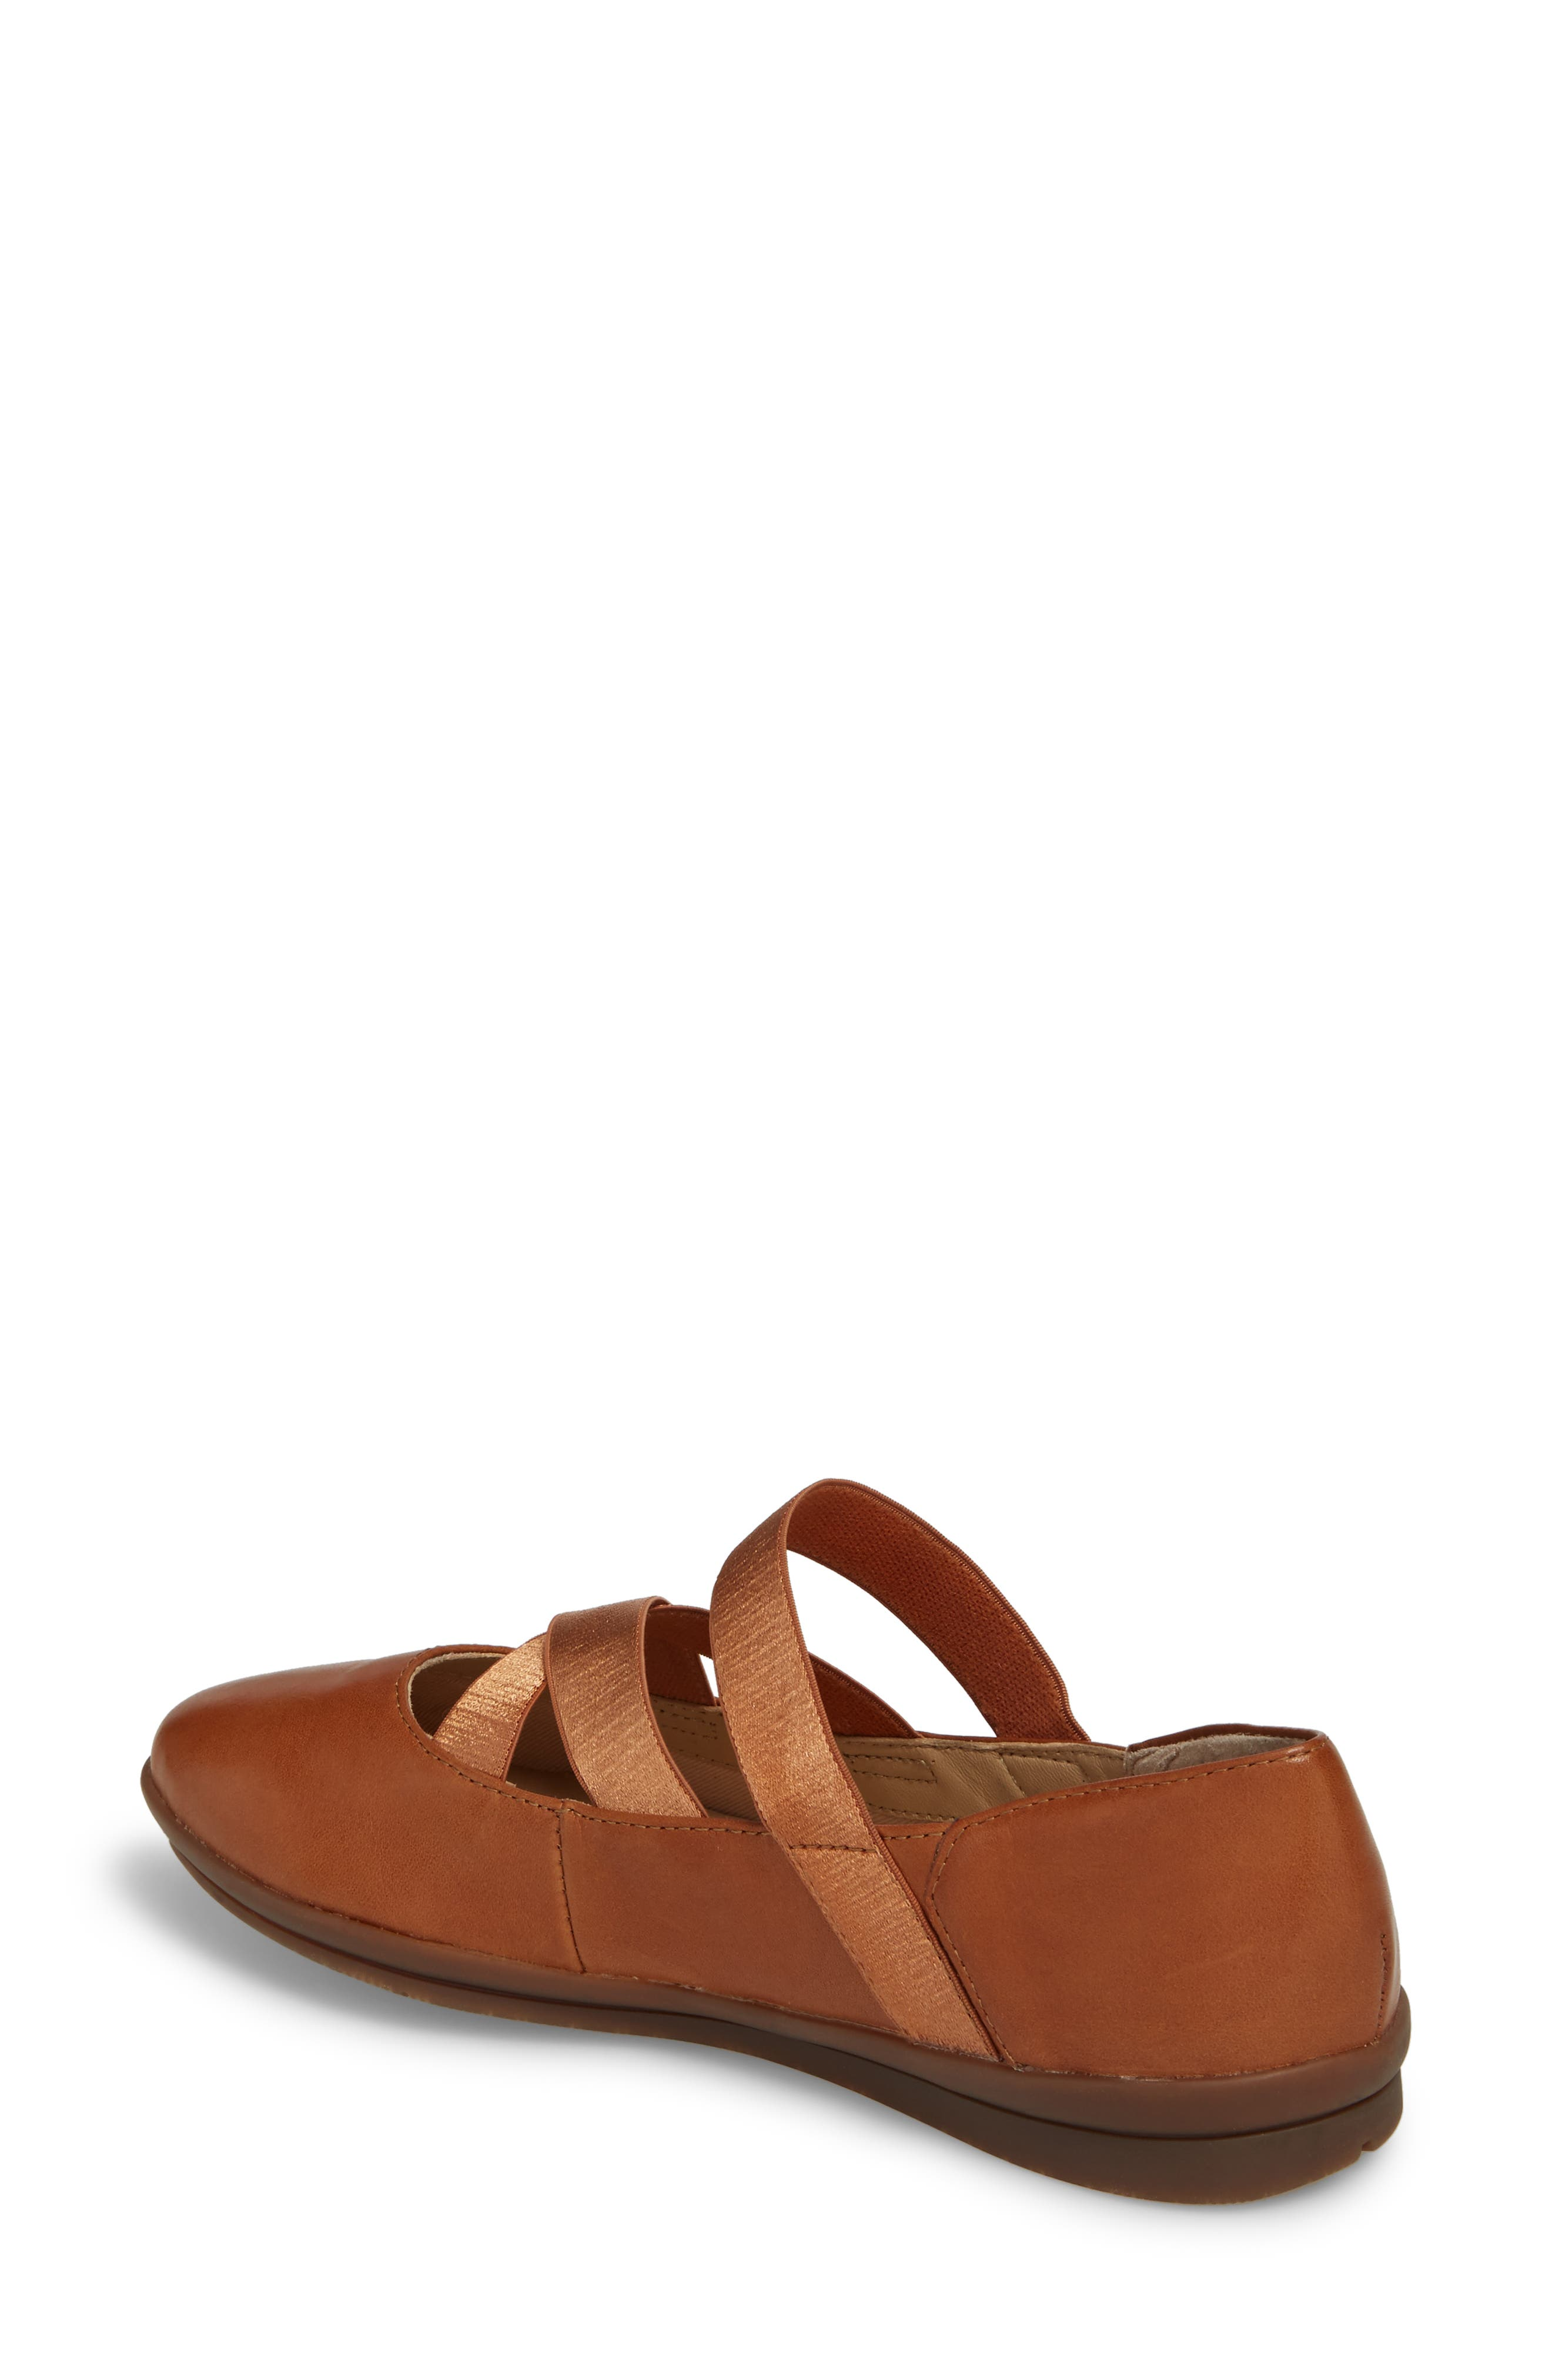 Meree Madrine Cross Strap Flat,                             Alternate thumbnail 6, color,